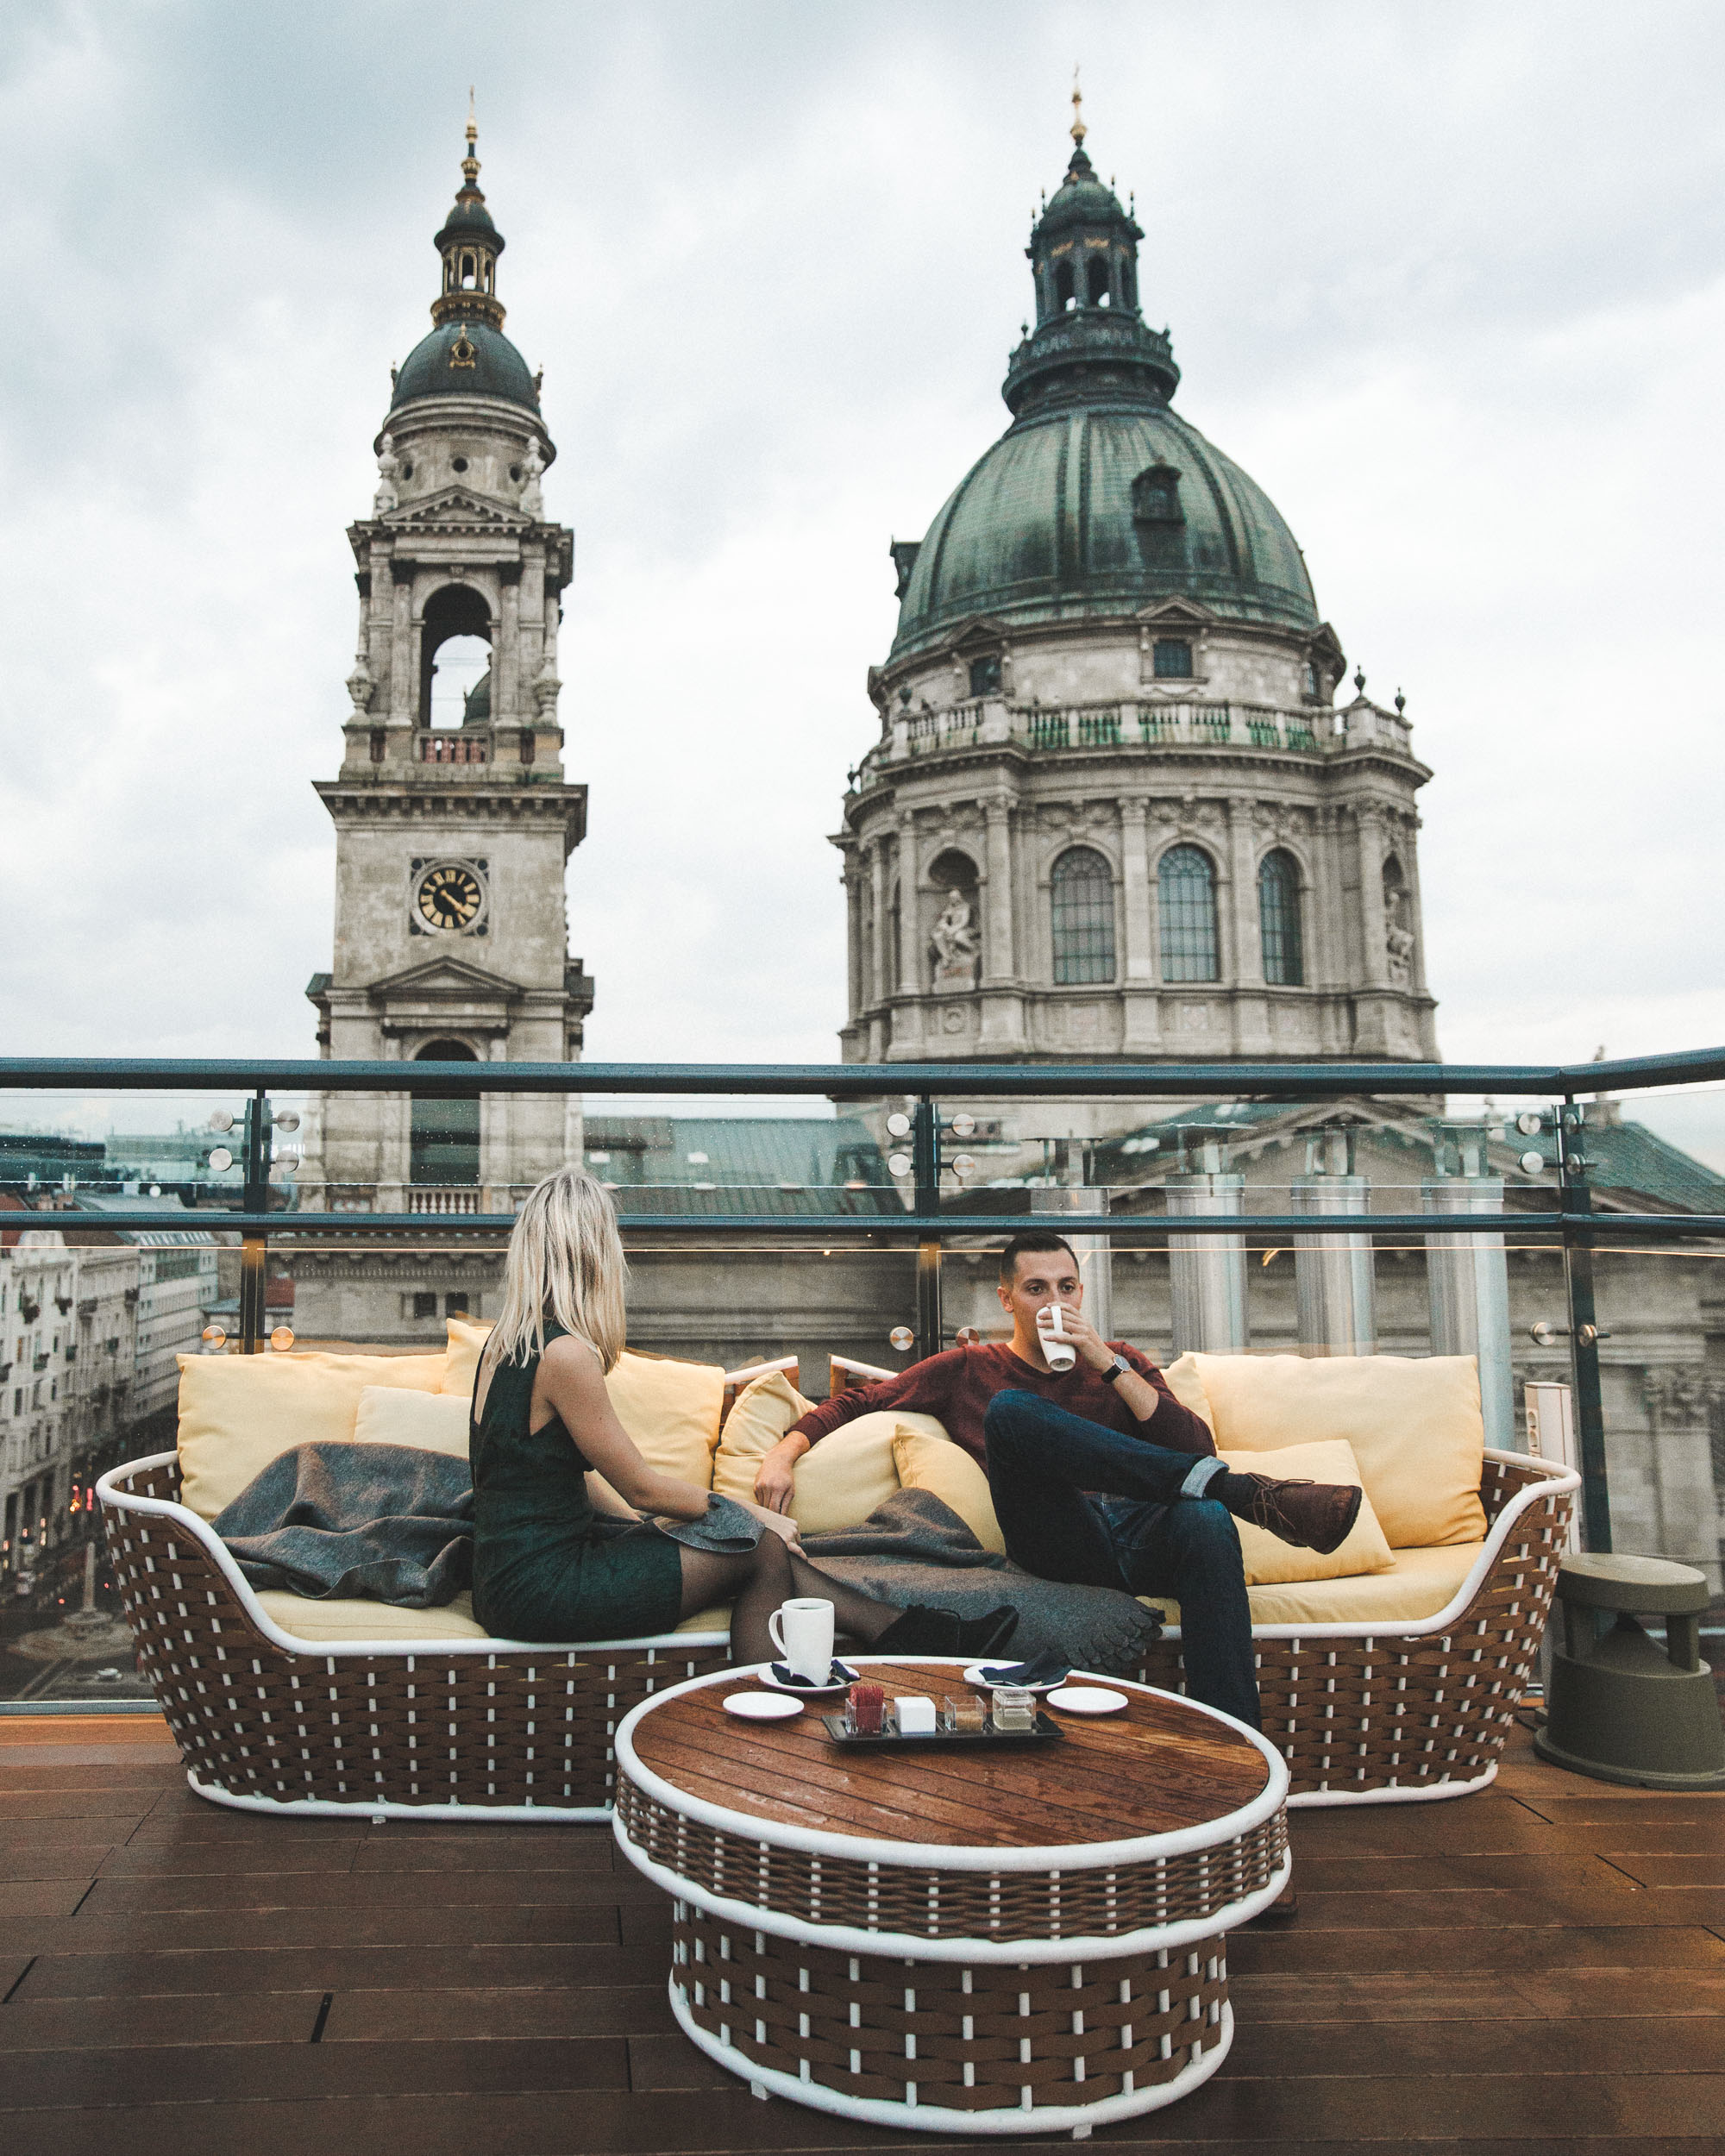 Rooftop views of St Stephen's Basilica in Budapest, Hungary